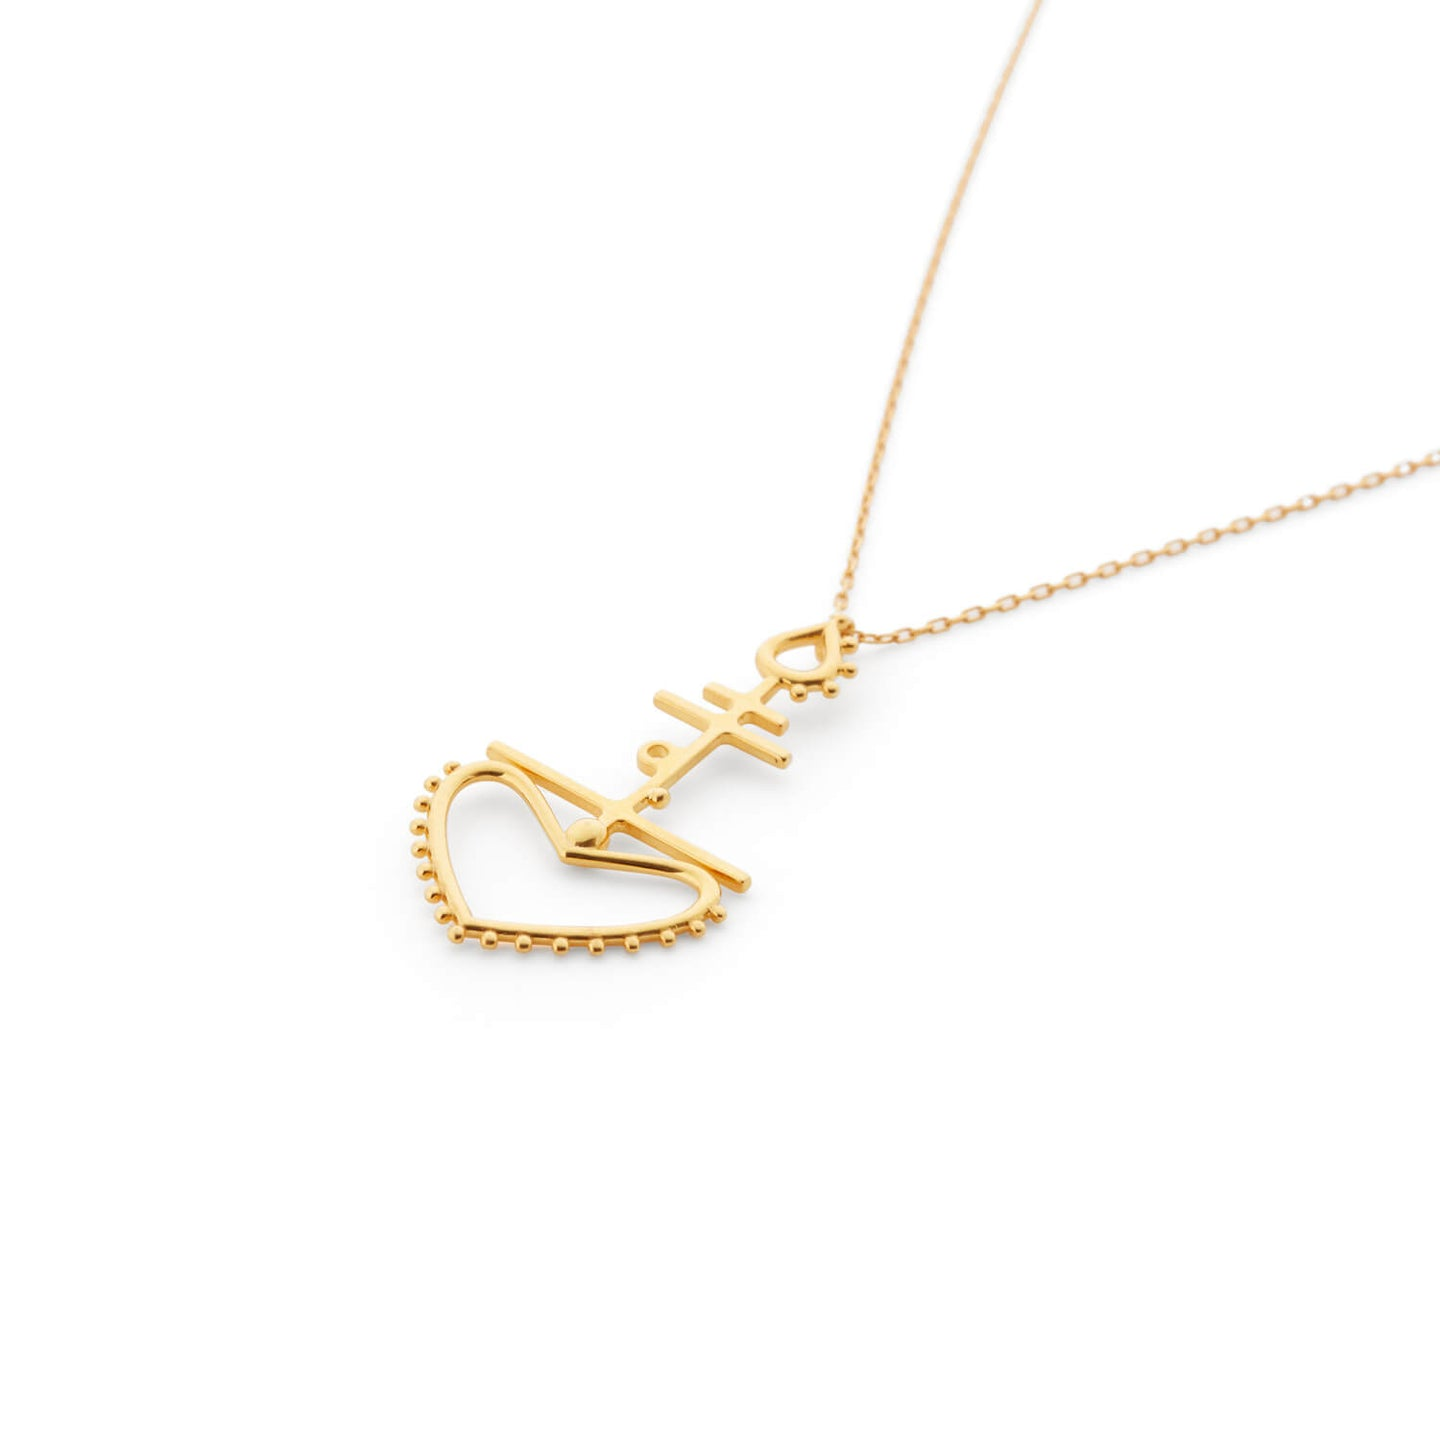 Chaucer Necklace in Gold Vermeil